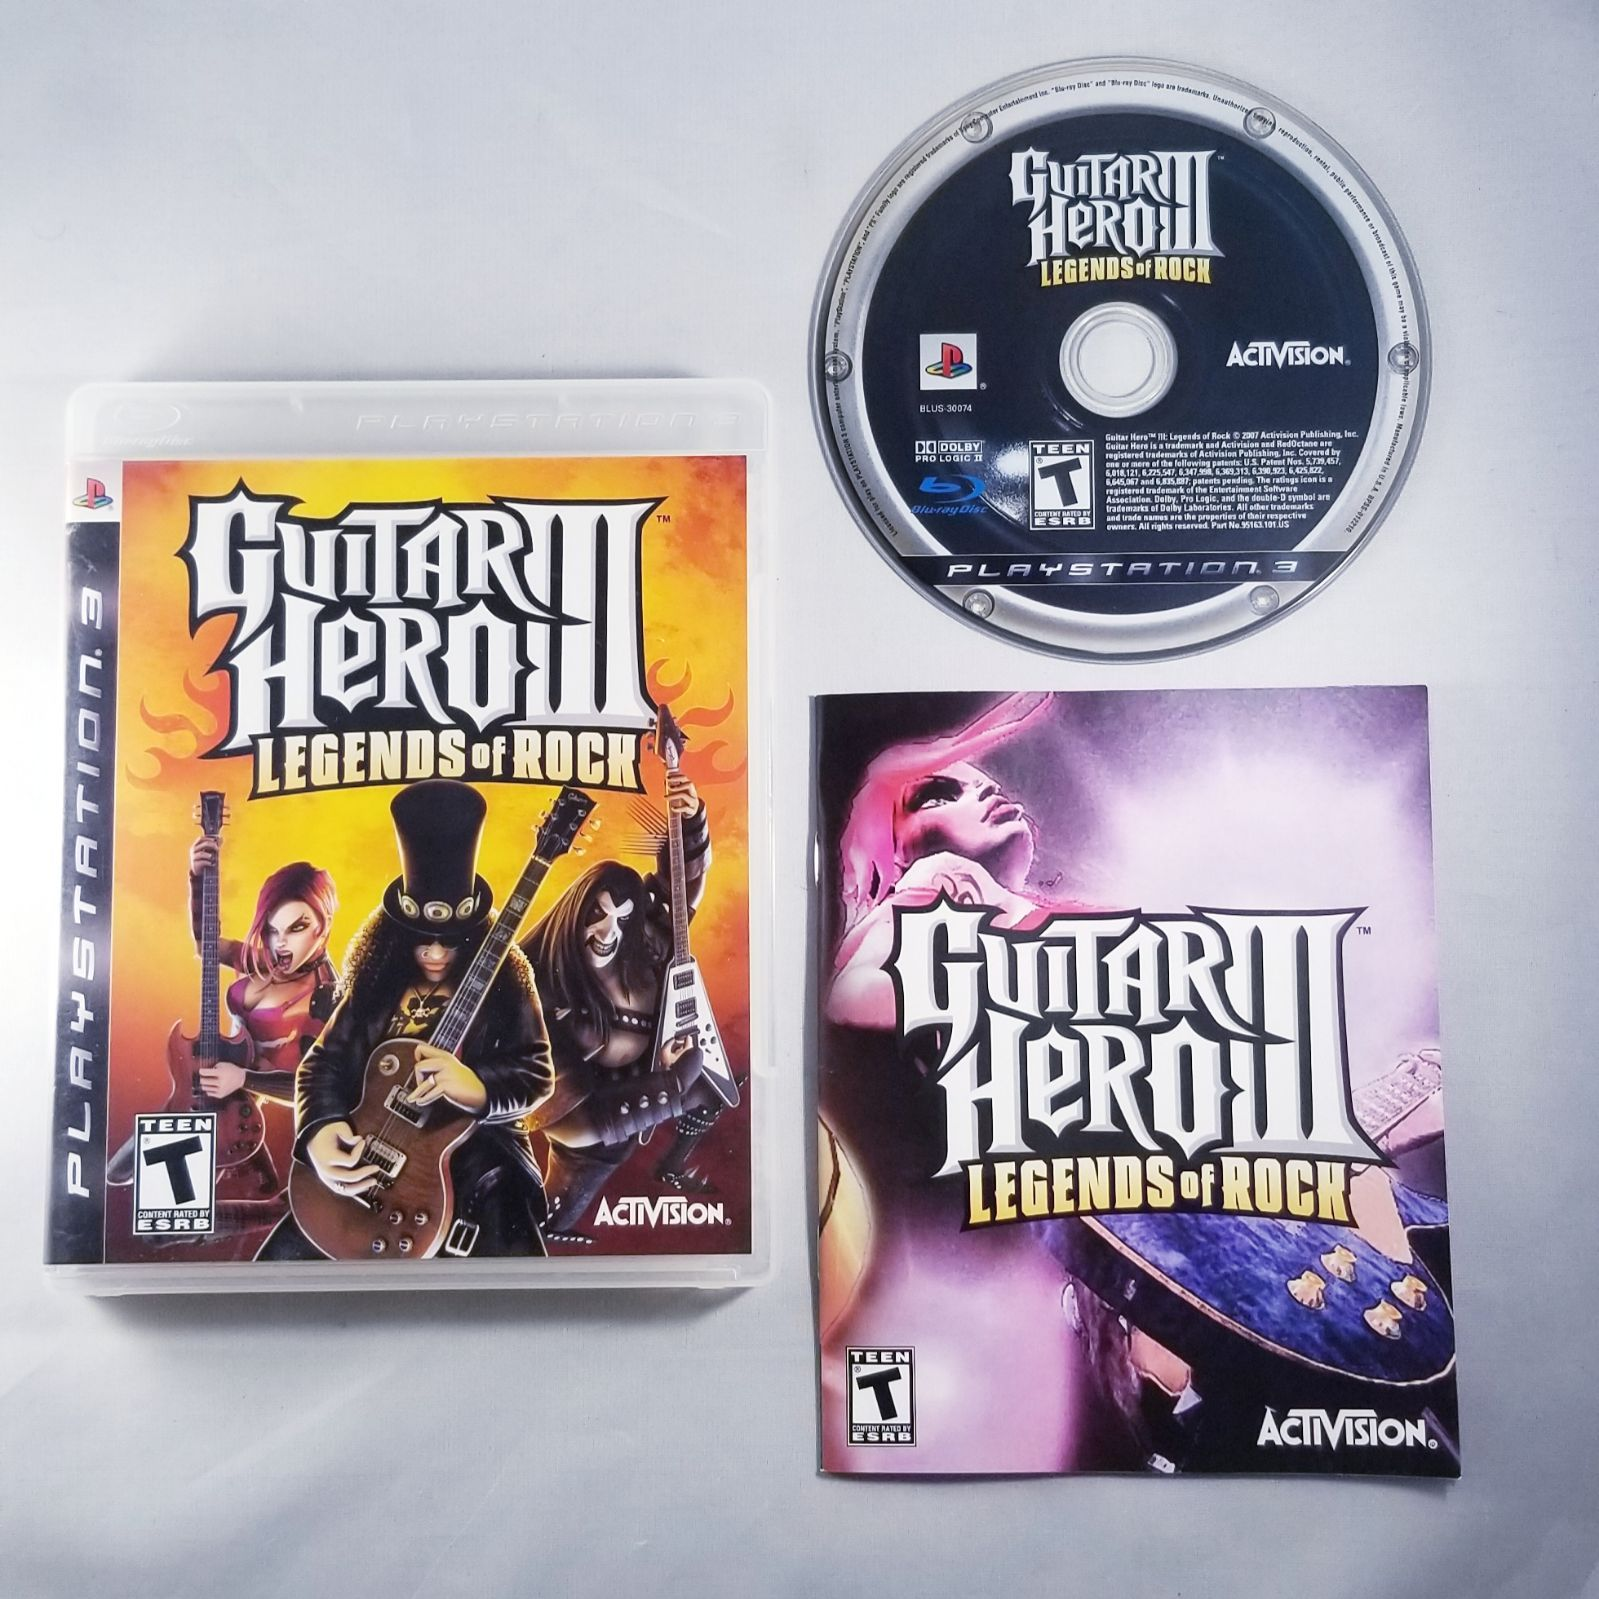 Guitar hero 3 legends of rock game complete in box with